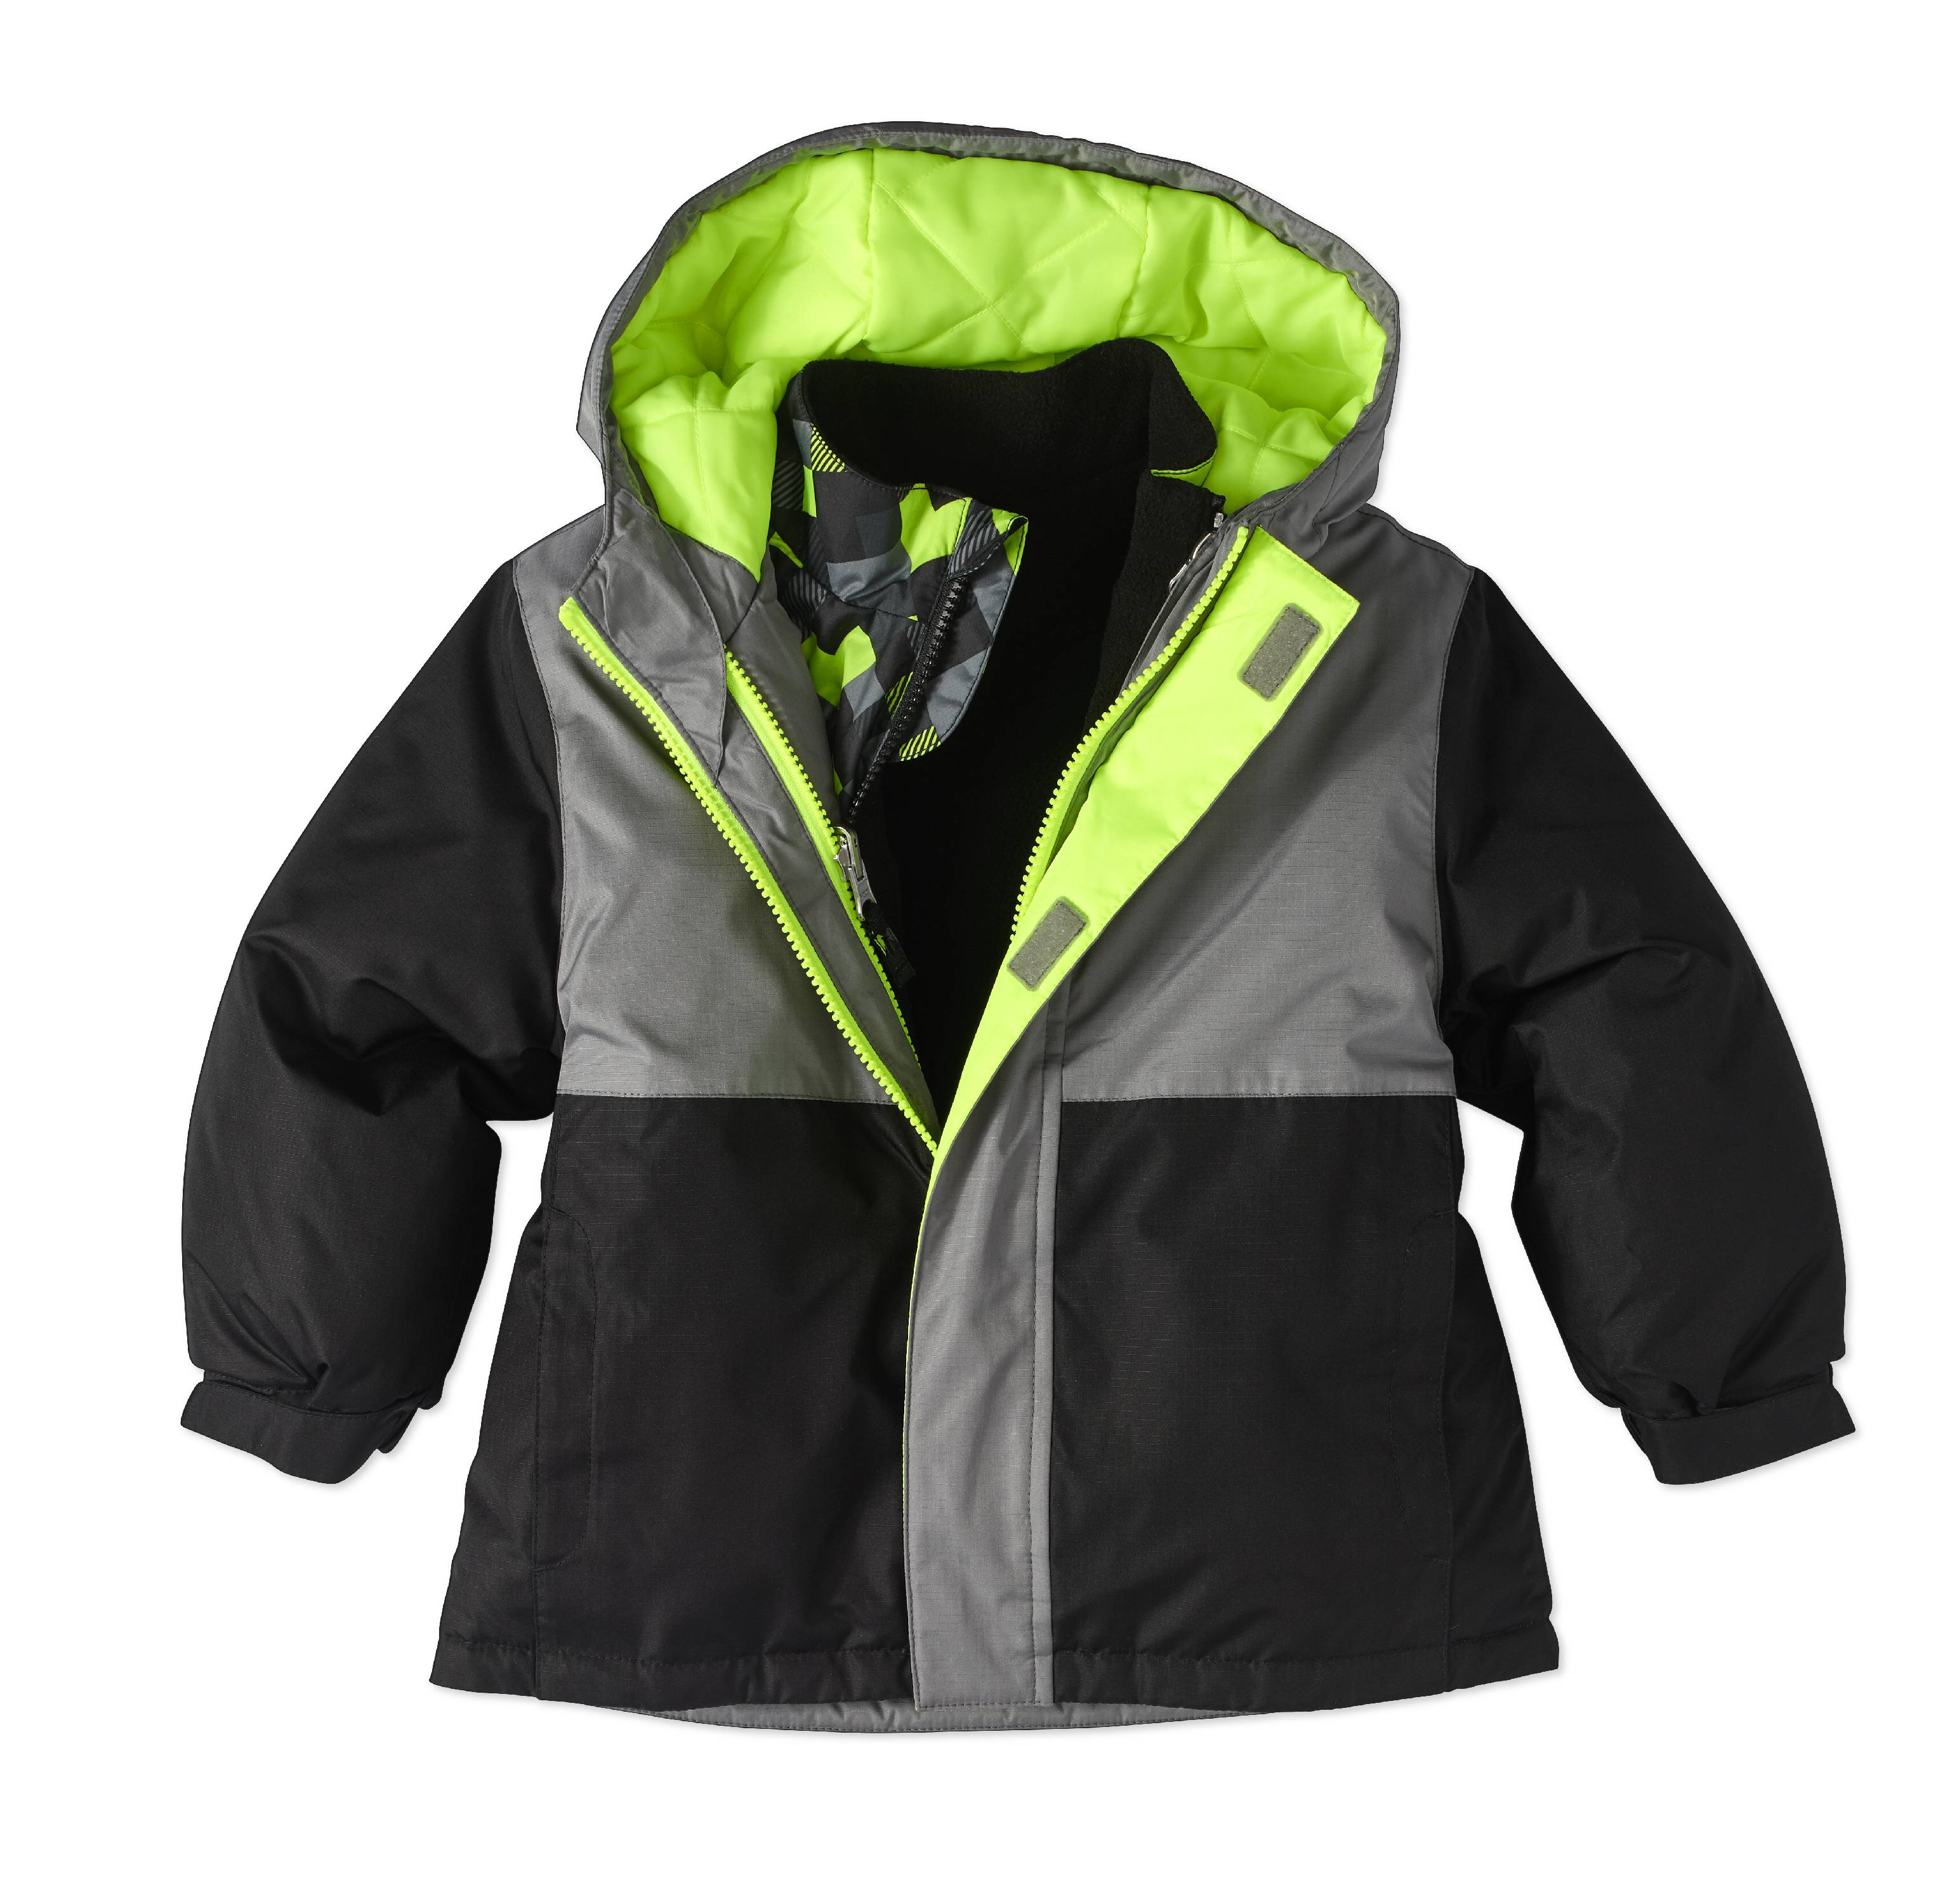 Healthtex Baby Toddler Boy 3 In 1 Ski/Snowboard Jacket W/ Removable Inner Layer